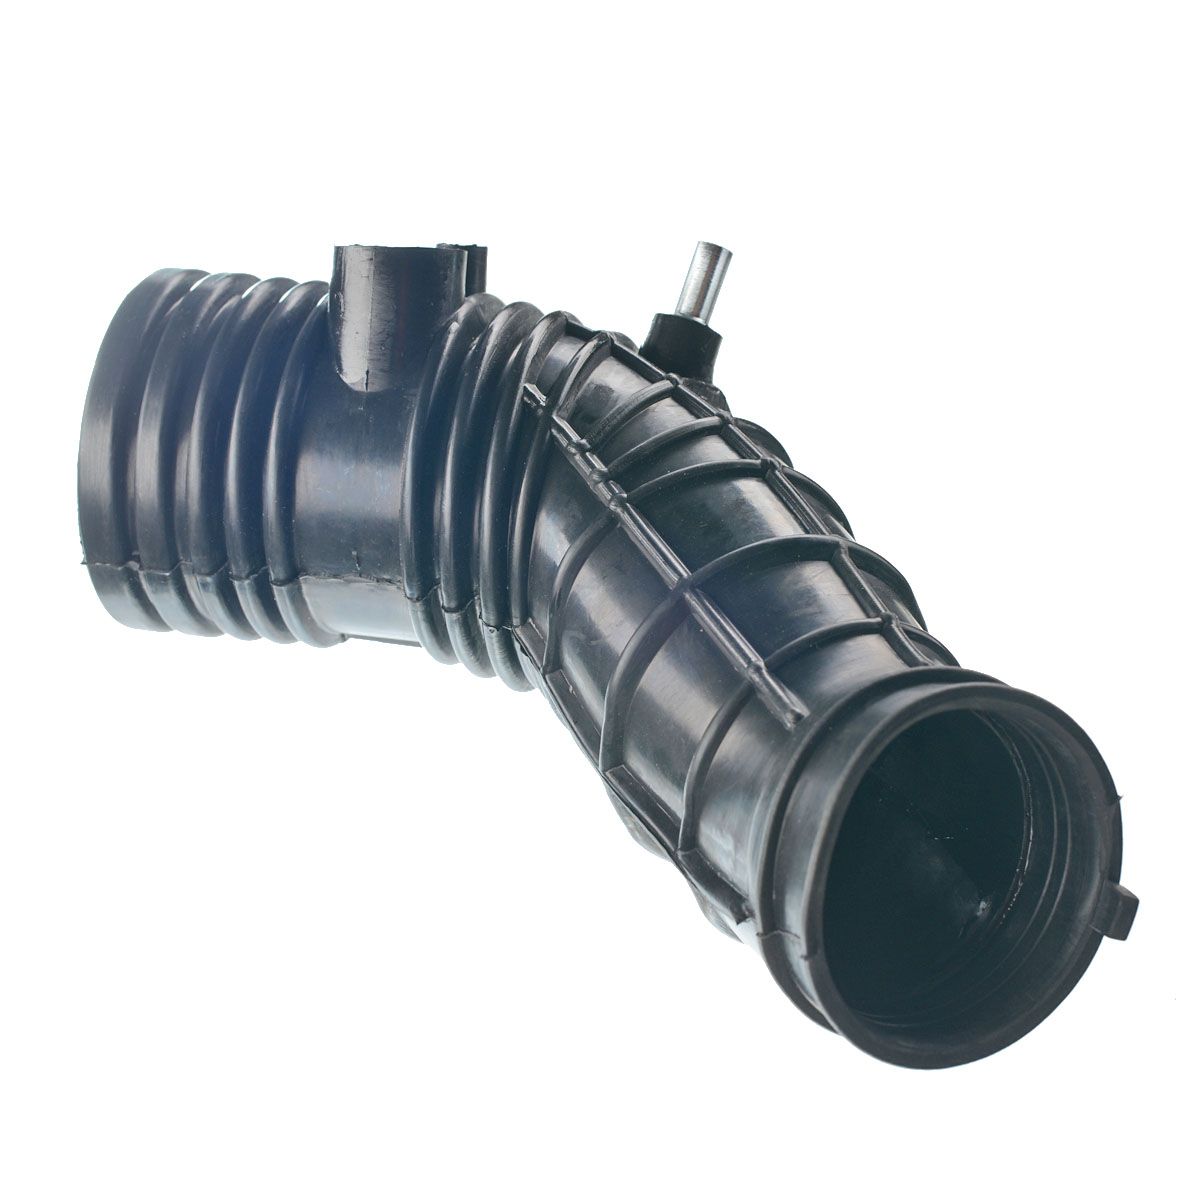 Replacement for 2003-2007 Honda Accord 2.4L Air Intake Hose Part# 17228-RAA-A00